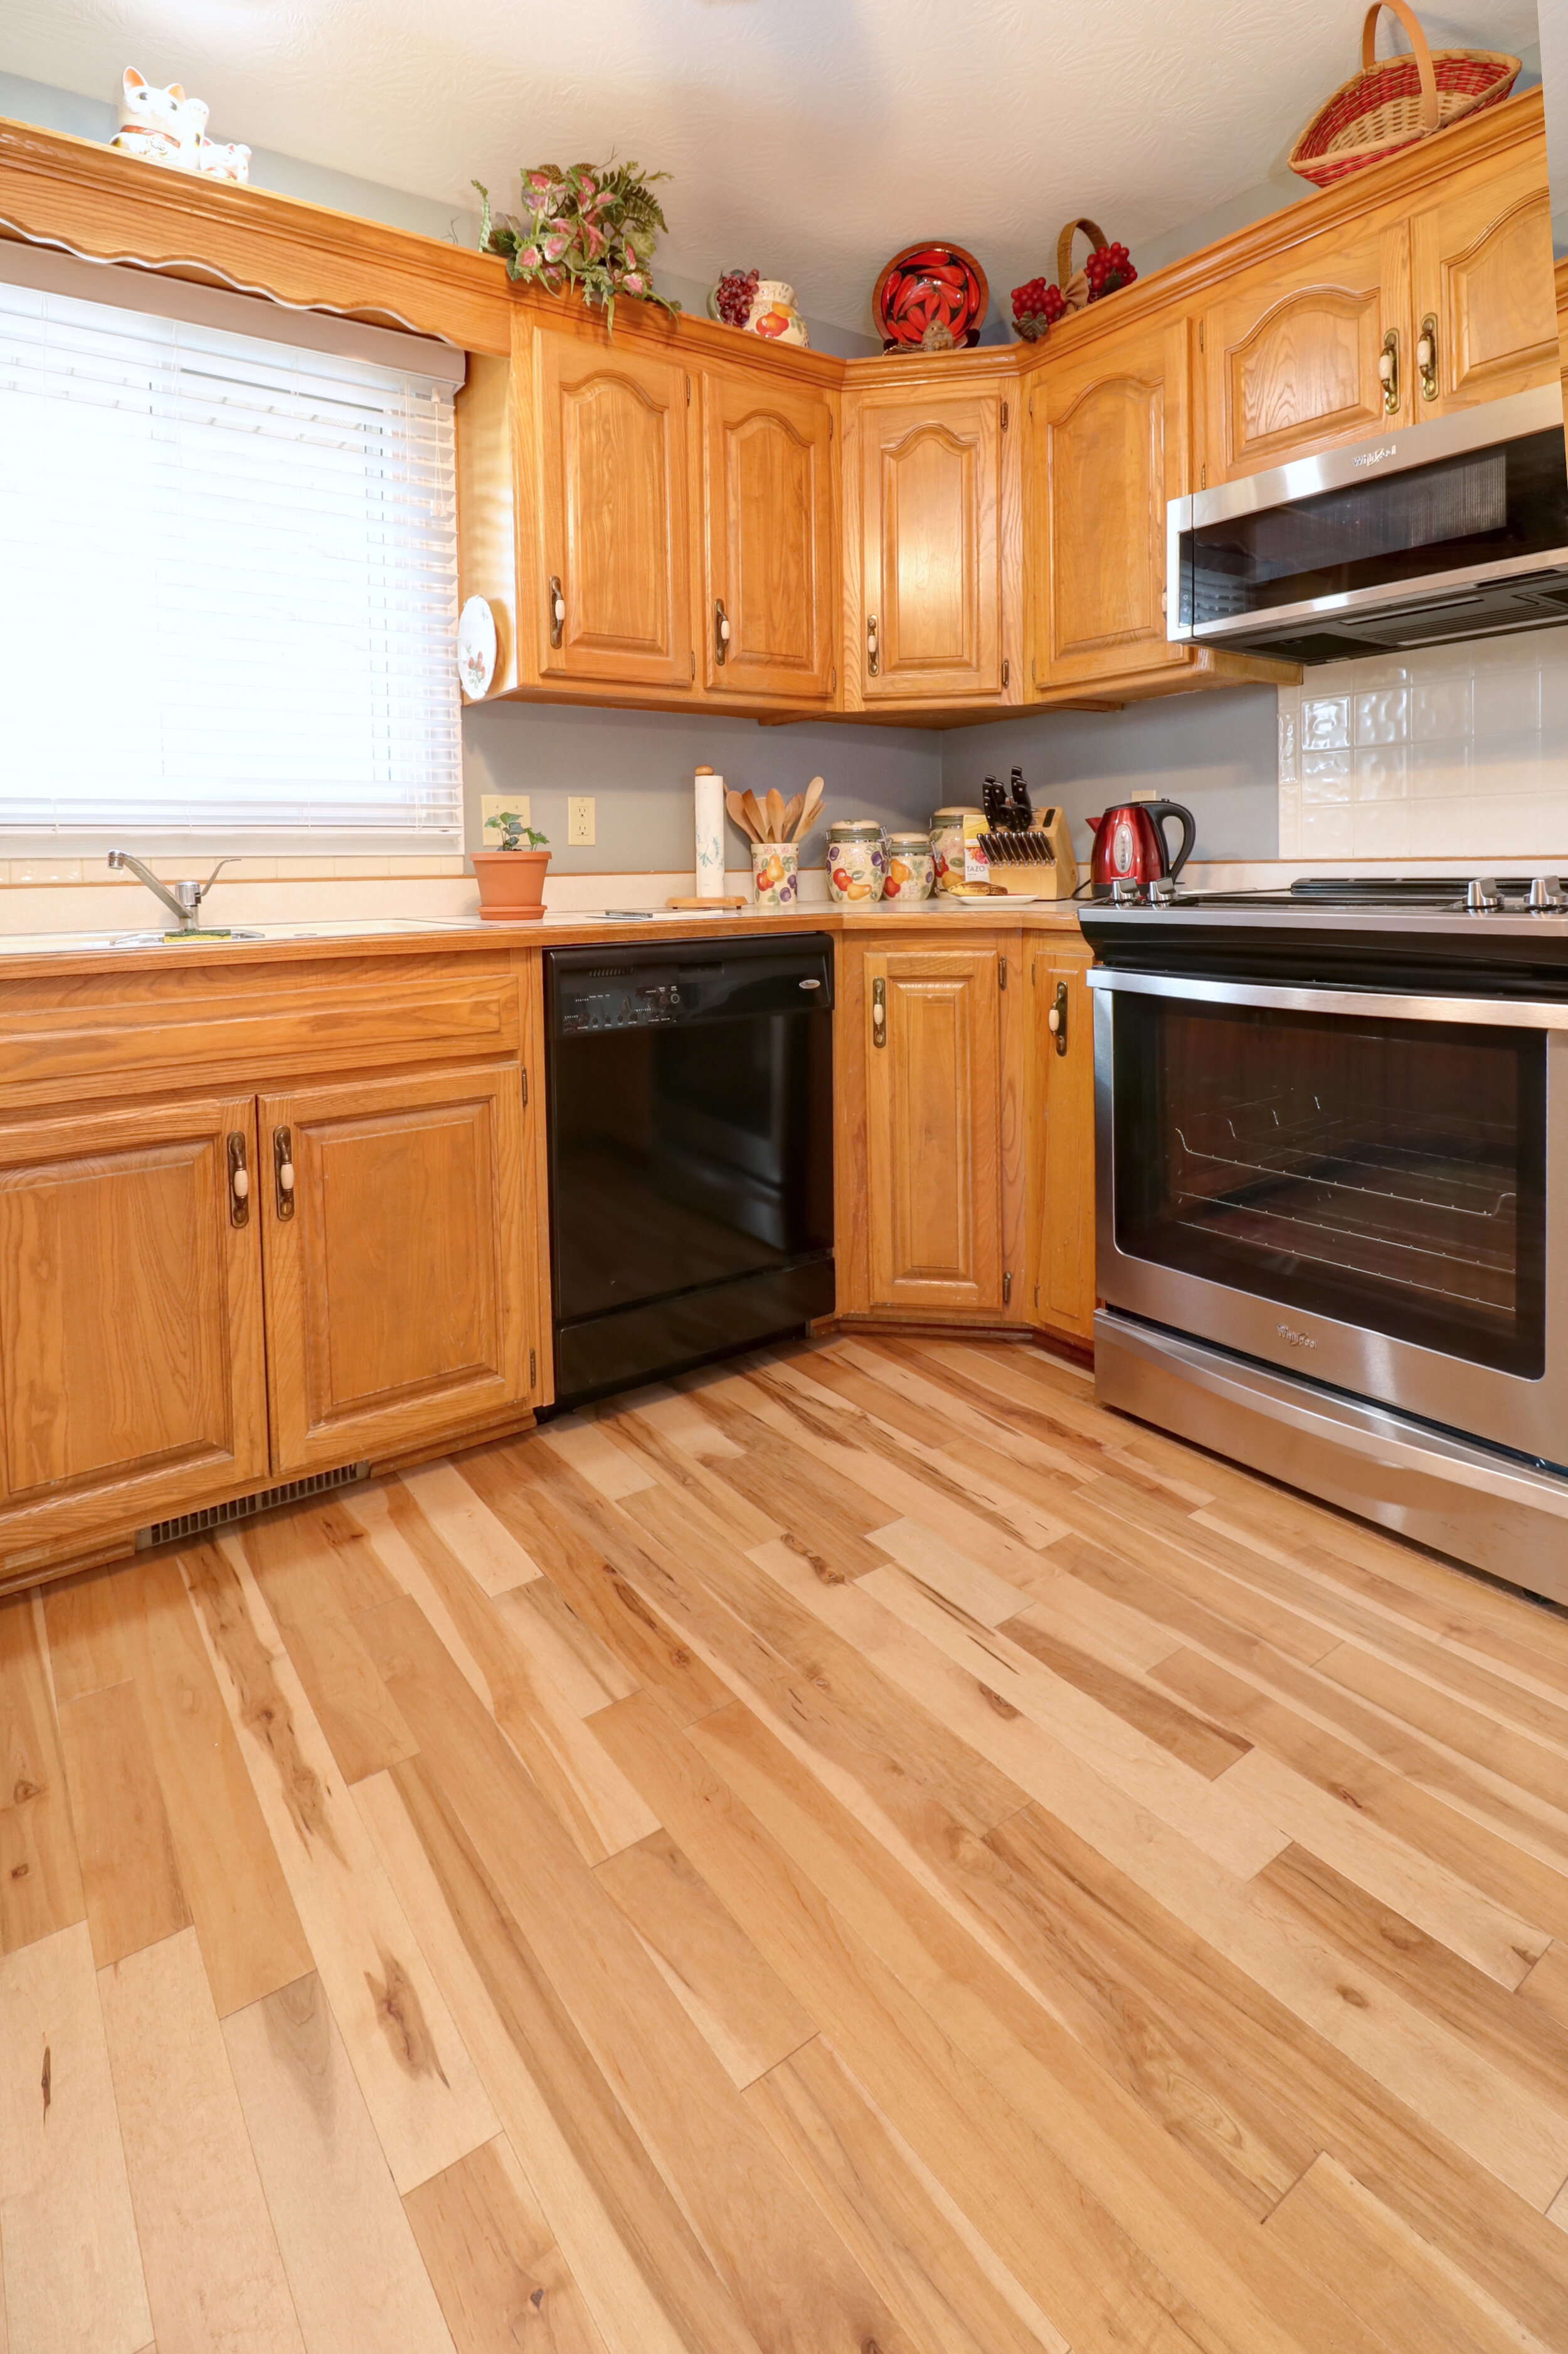 Stock Oak Woodwork, What Color Laminate Flooring With Honey Oak Cabinets